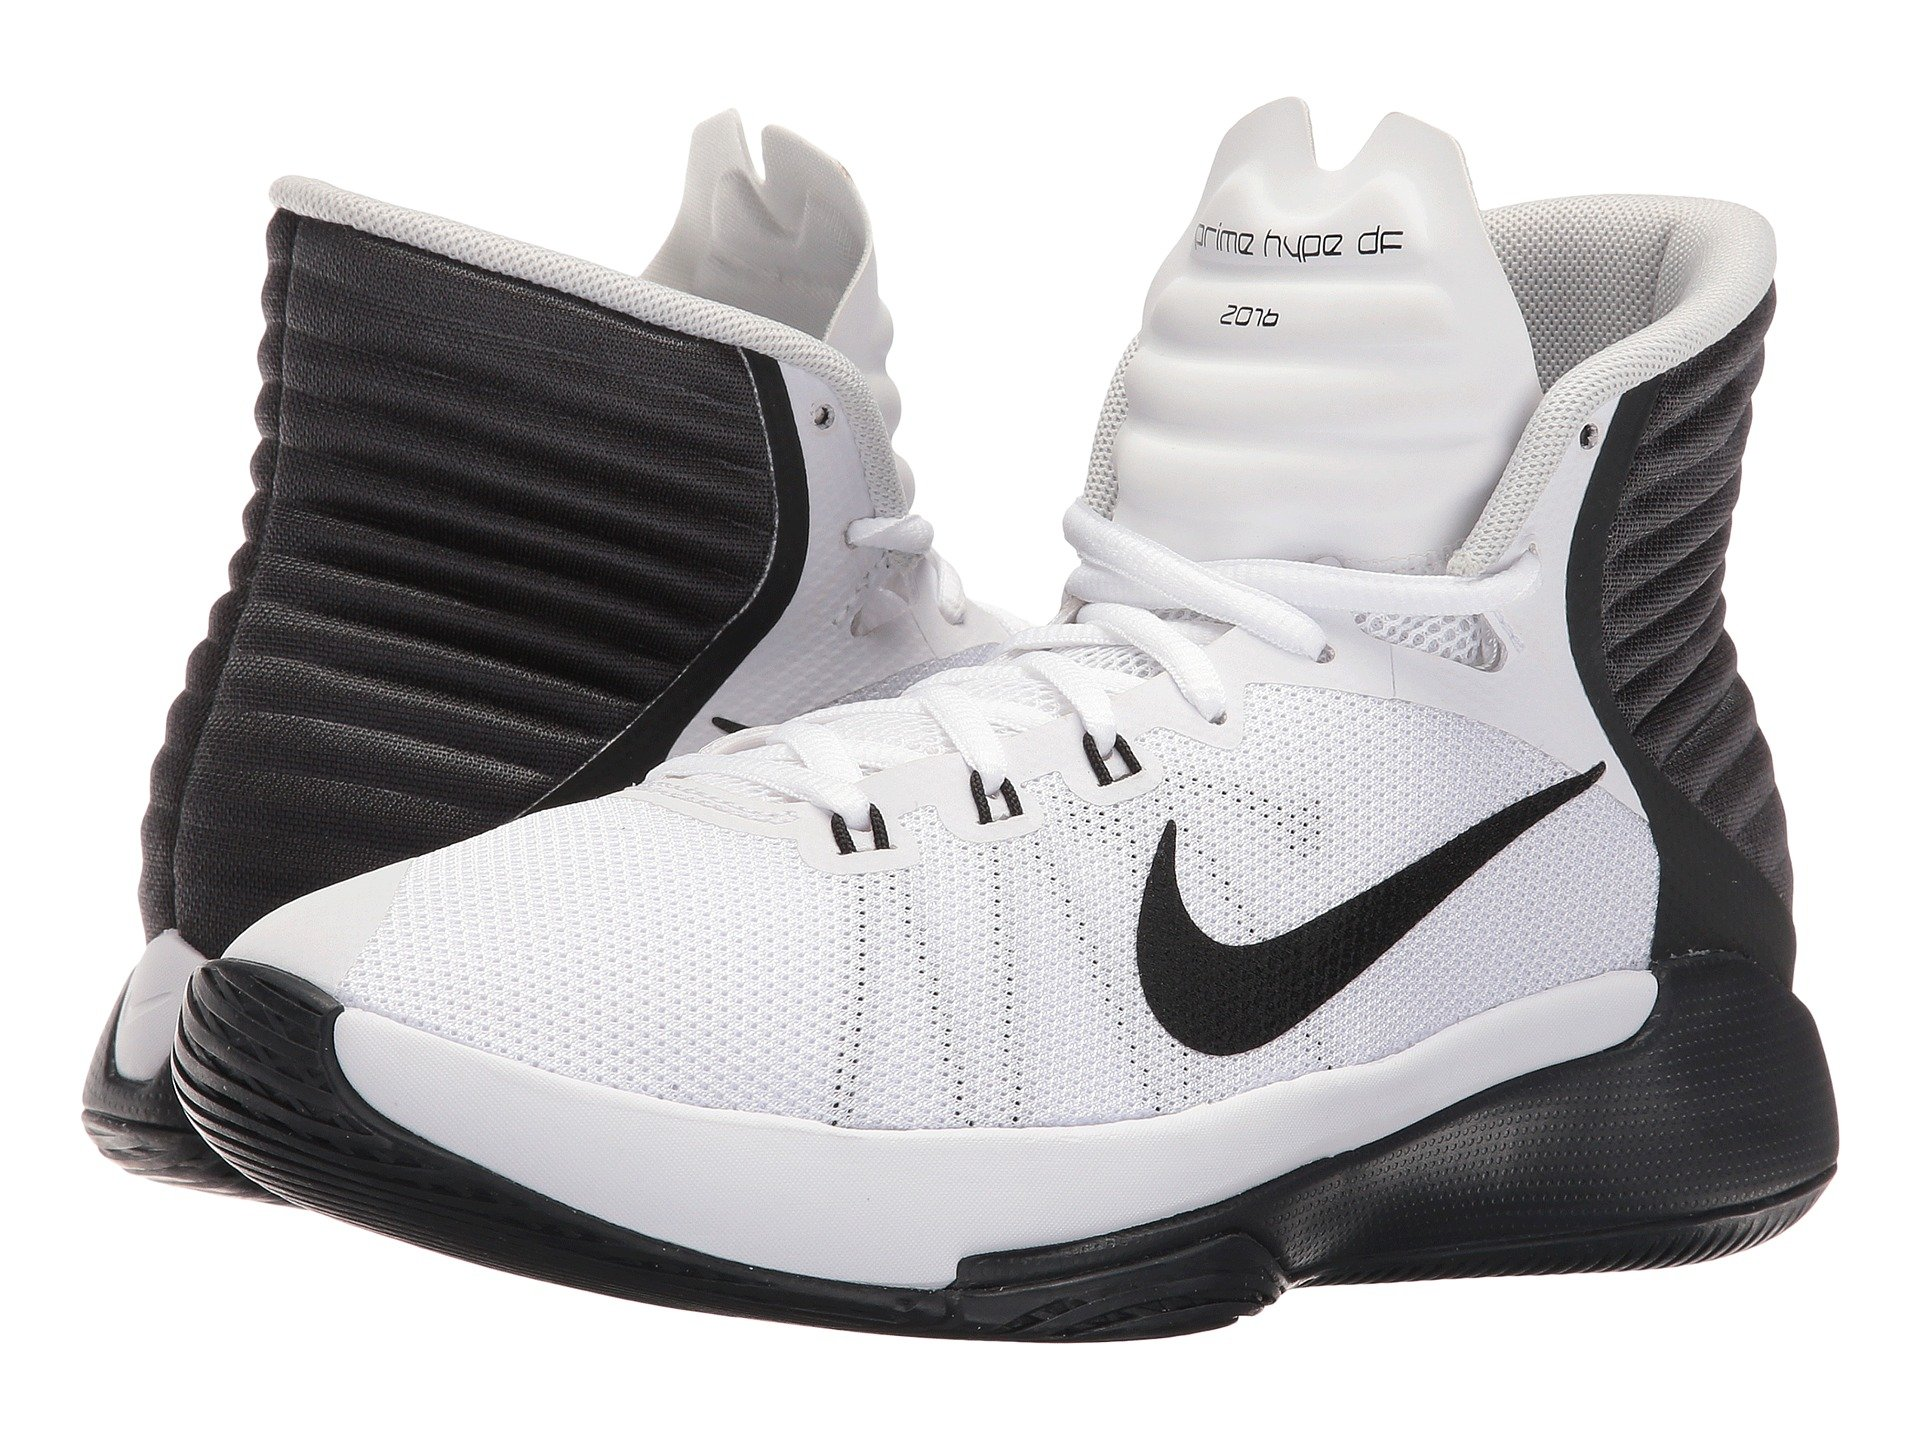 Prime Hype Df 2016, White/Anthracite/Pure Platinum/Black